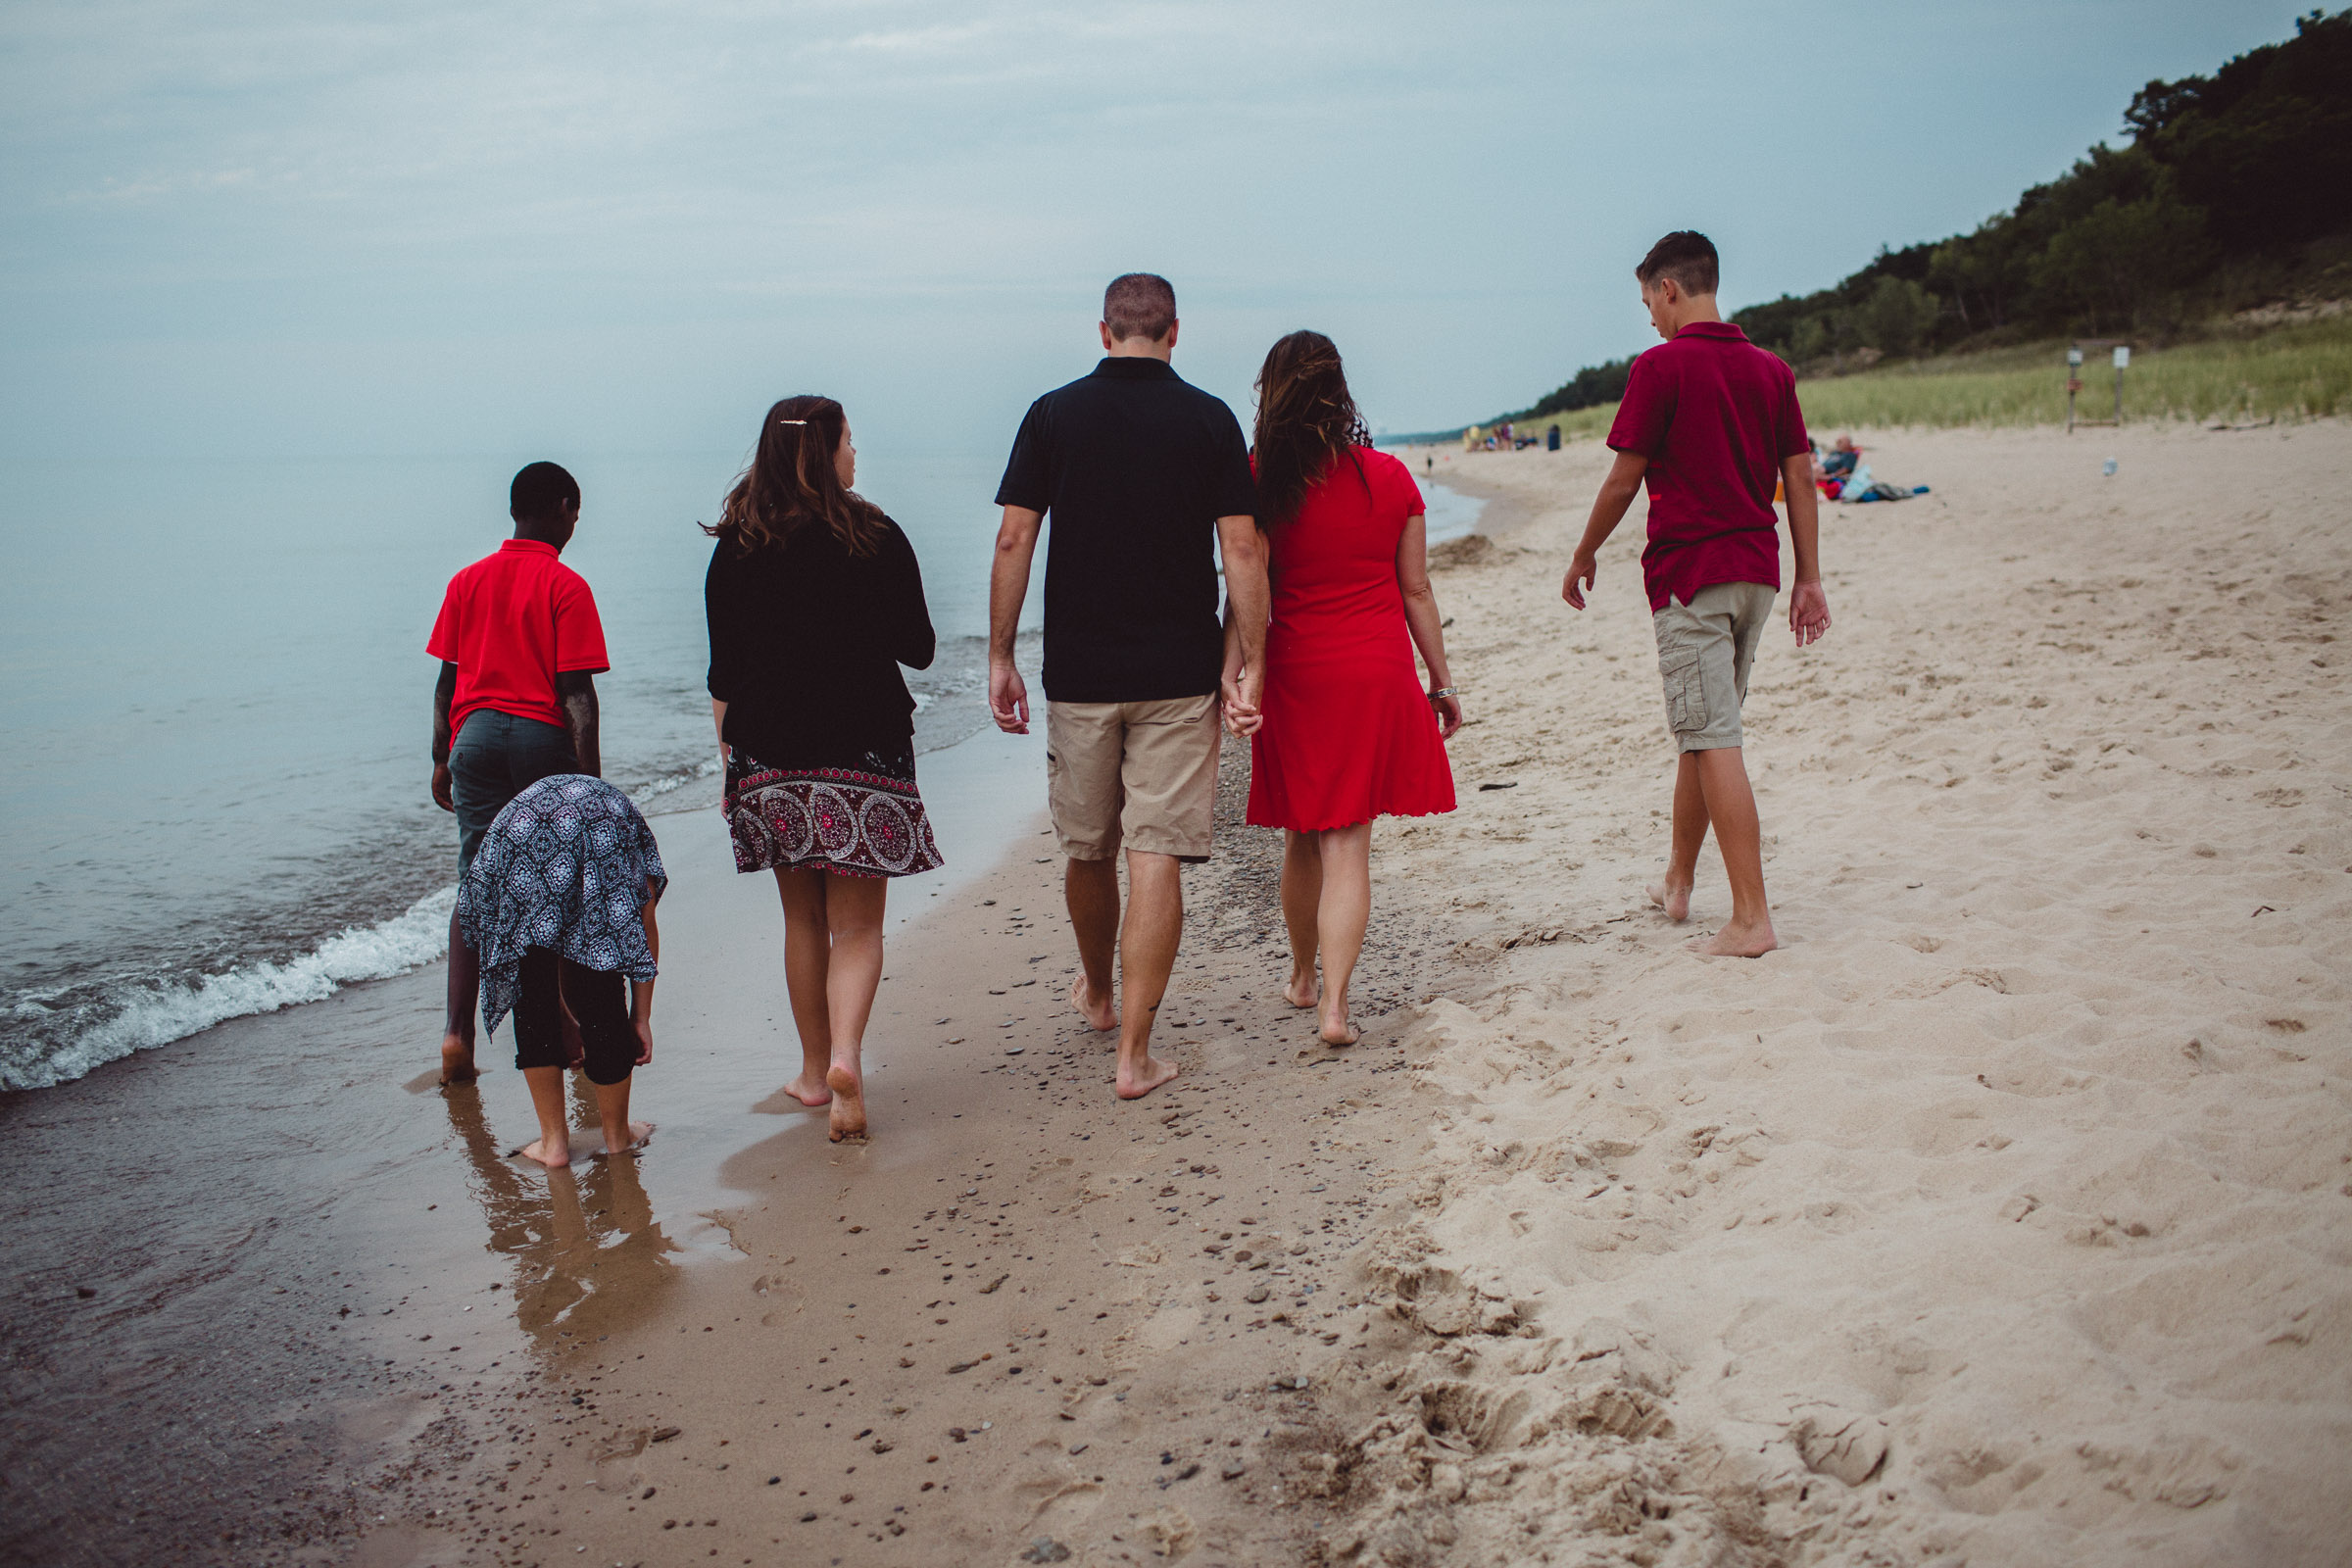 family walking together along beach front